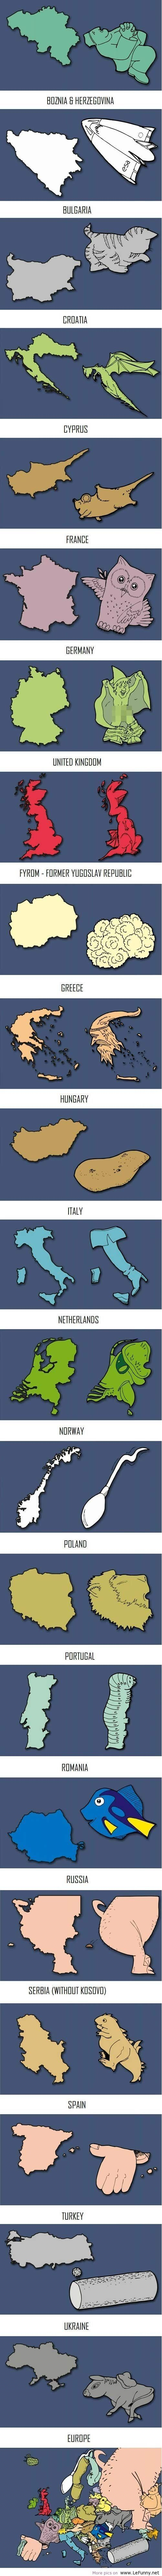 Funny Europe according to creative people